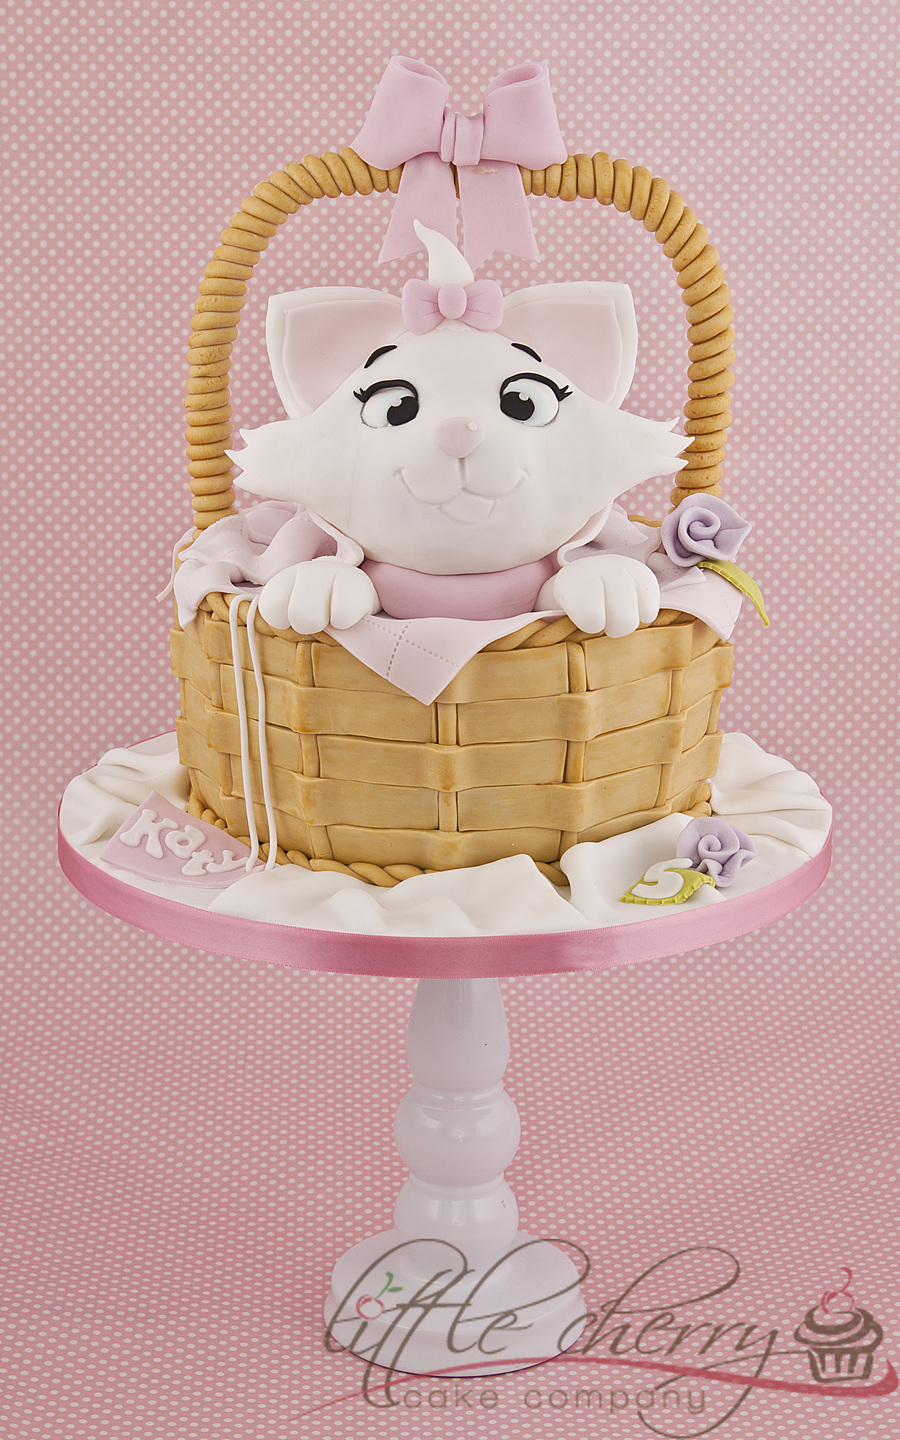 Marie Aristocats Cake on Cake Central